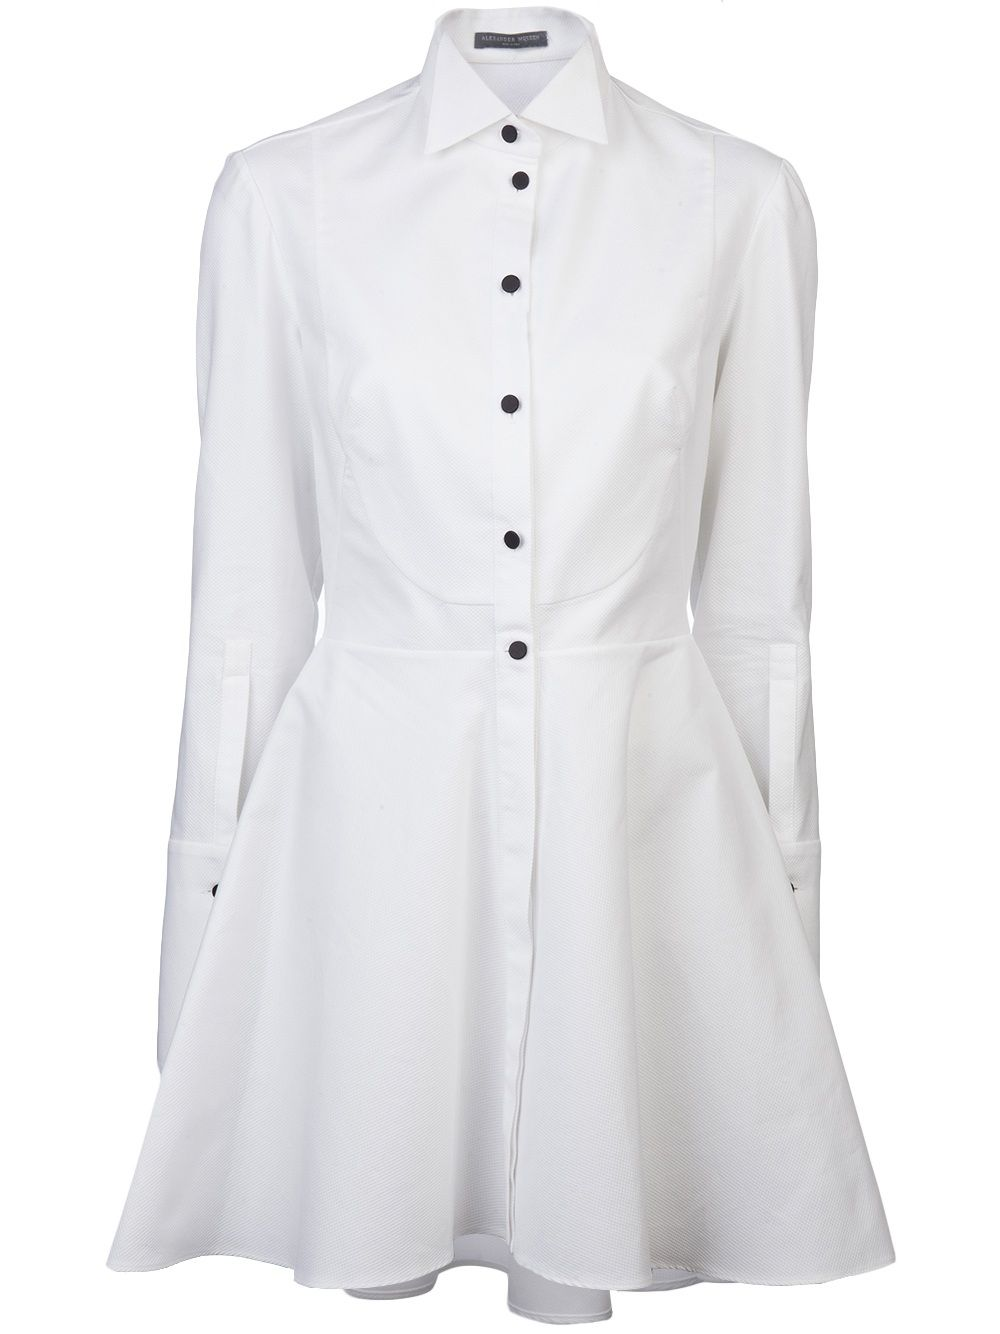 White-Dress-Shirt-For-Women-sbwrs0u5hof.jpg (1000×1334) | Top 10 ...